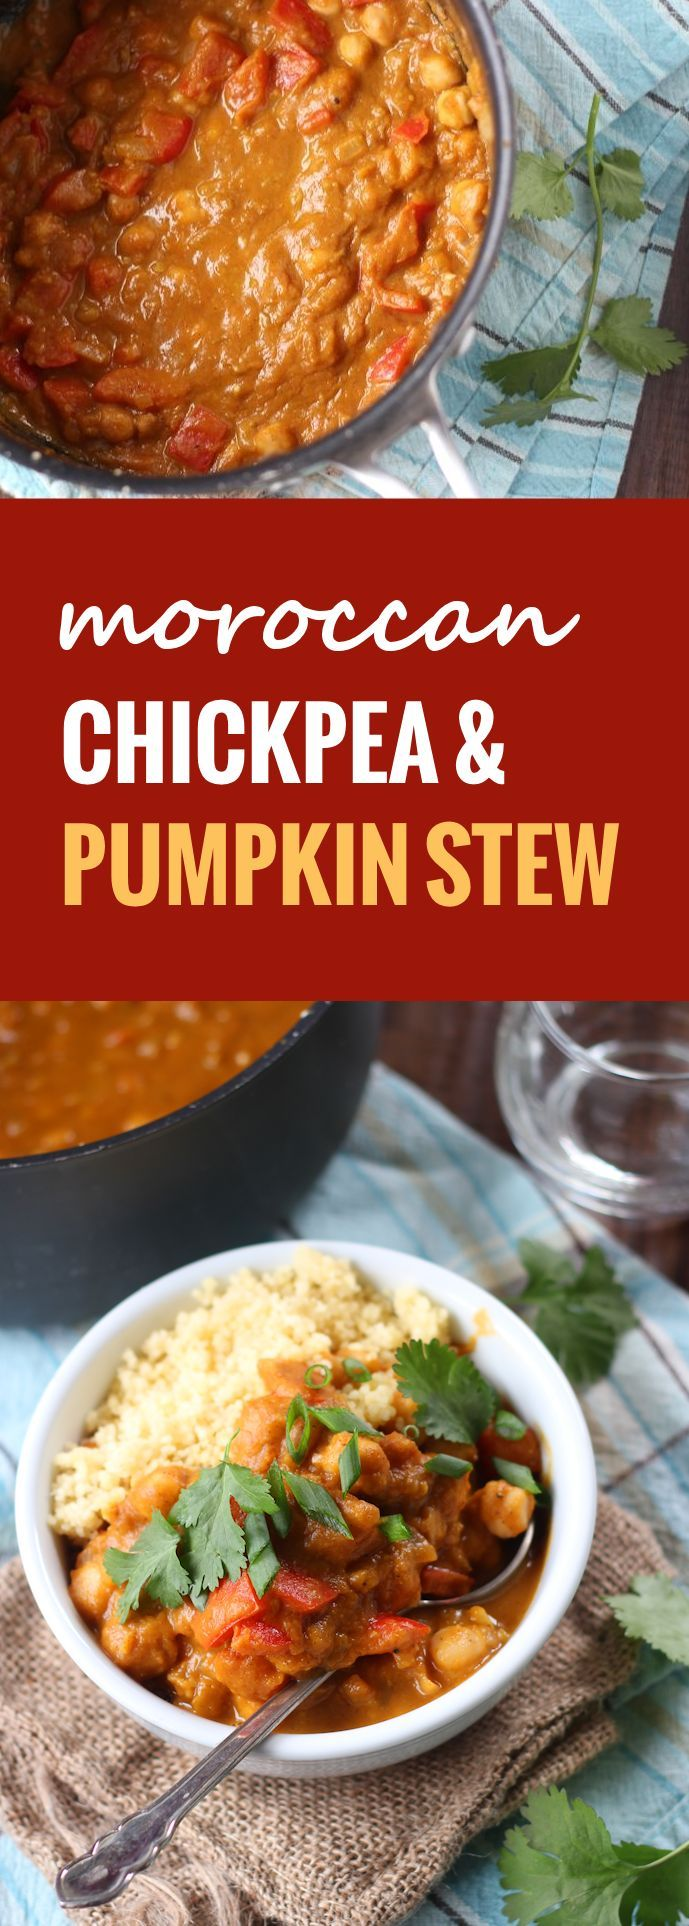 100+ Moroccan Chickpea Soup Recipes on Pinterest | Moroccan Chickpea ...